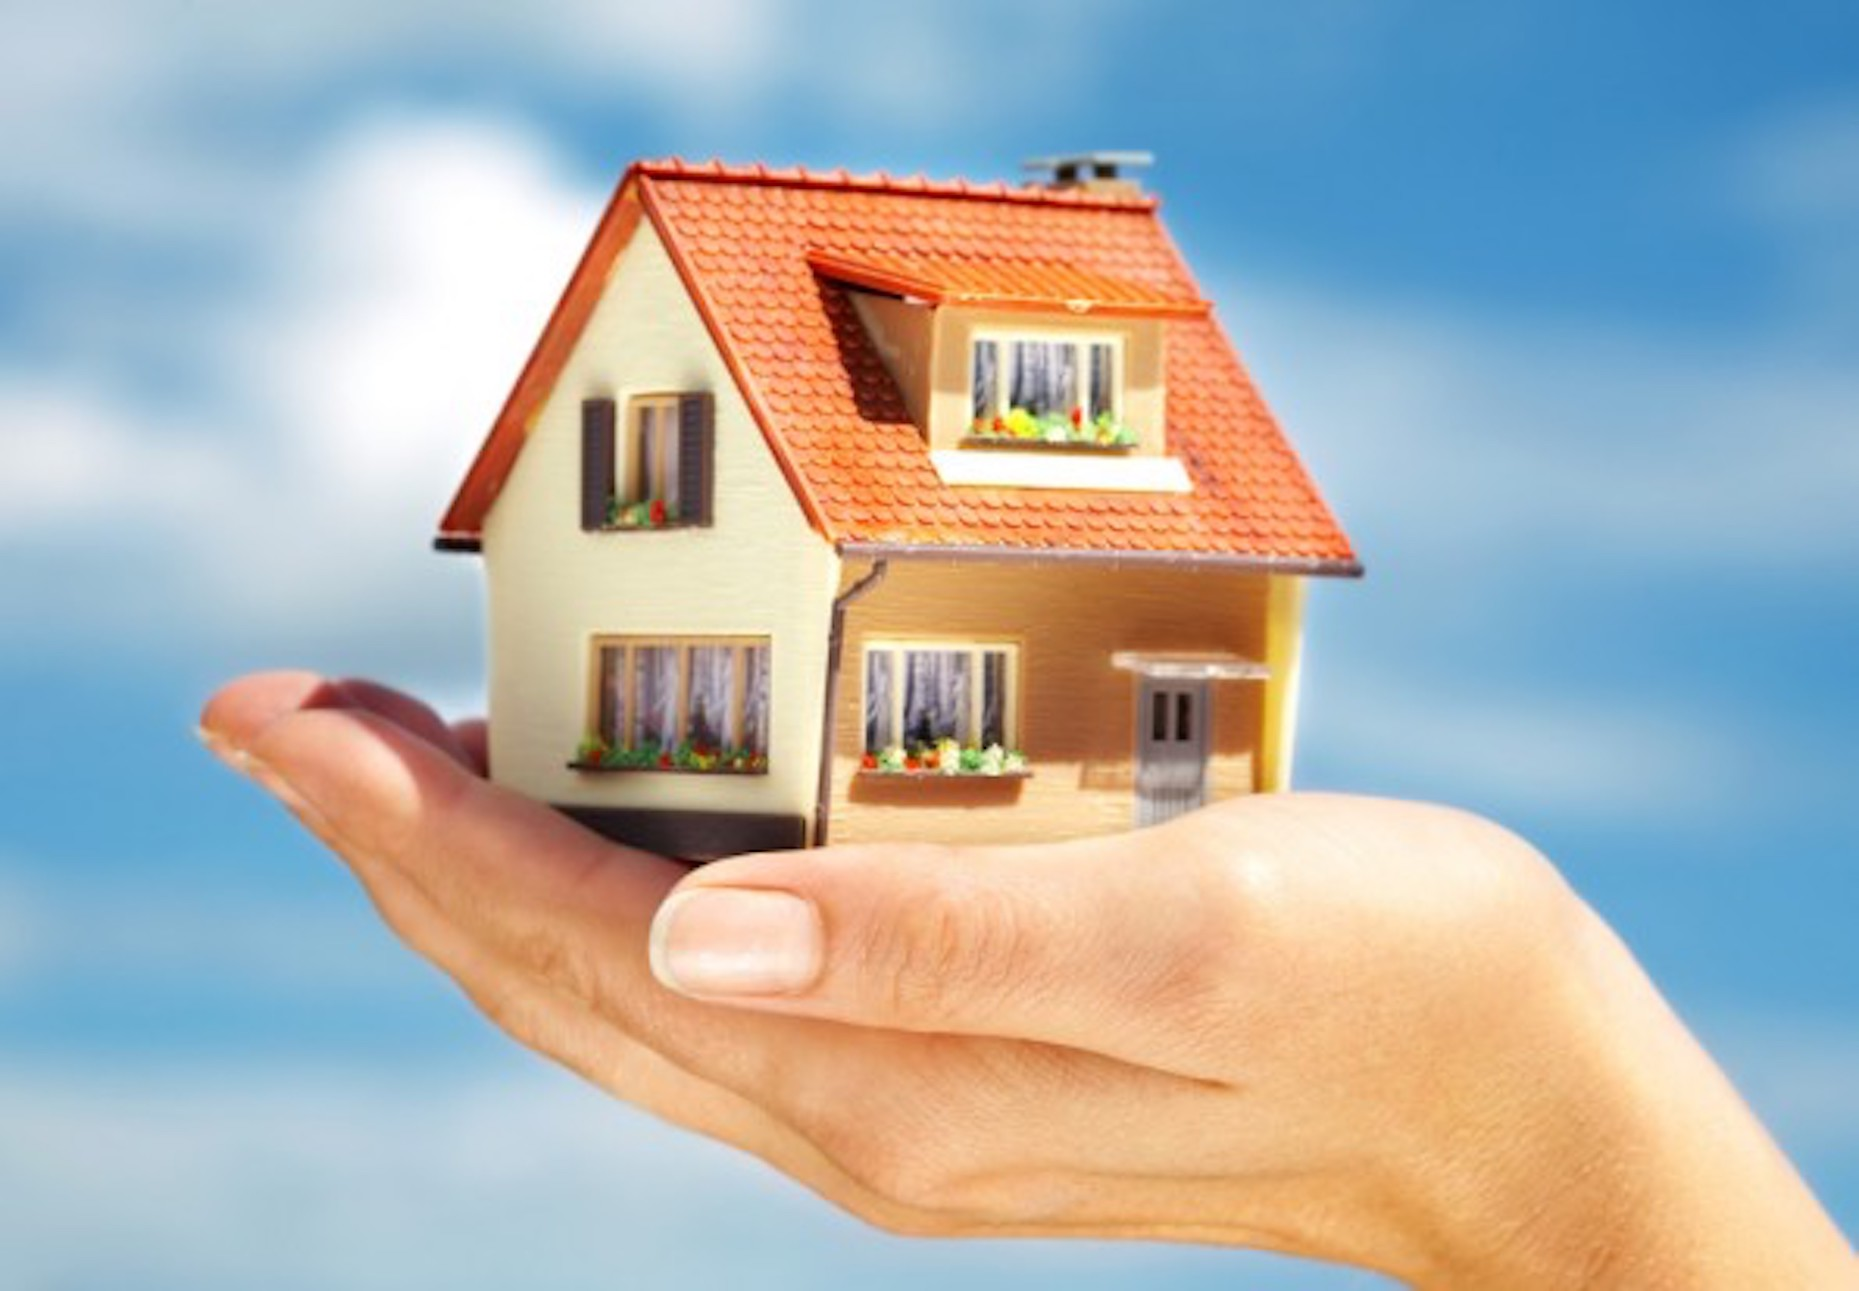 How to buy a house a helpful guide for first time homebuyers ccuart Image collections